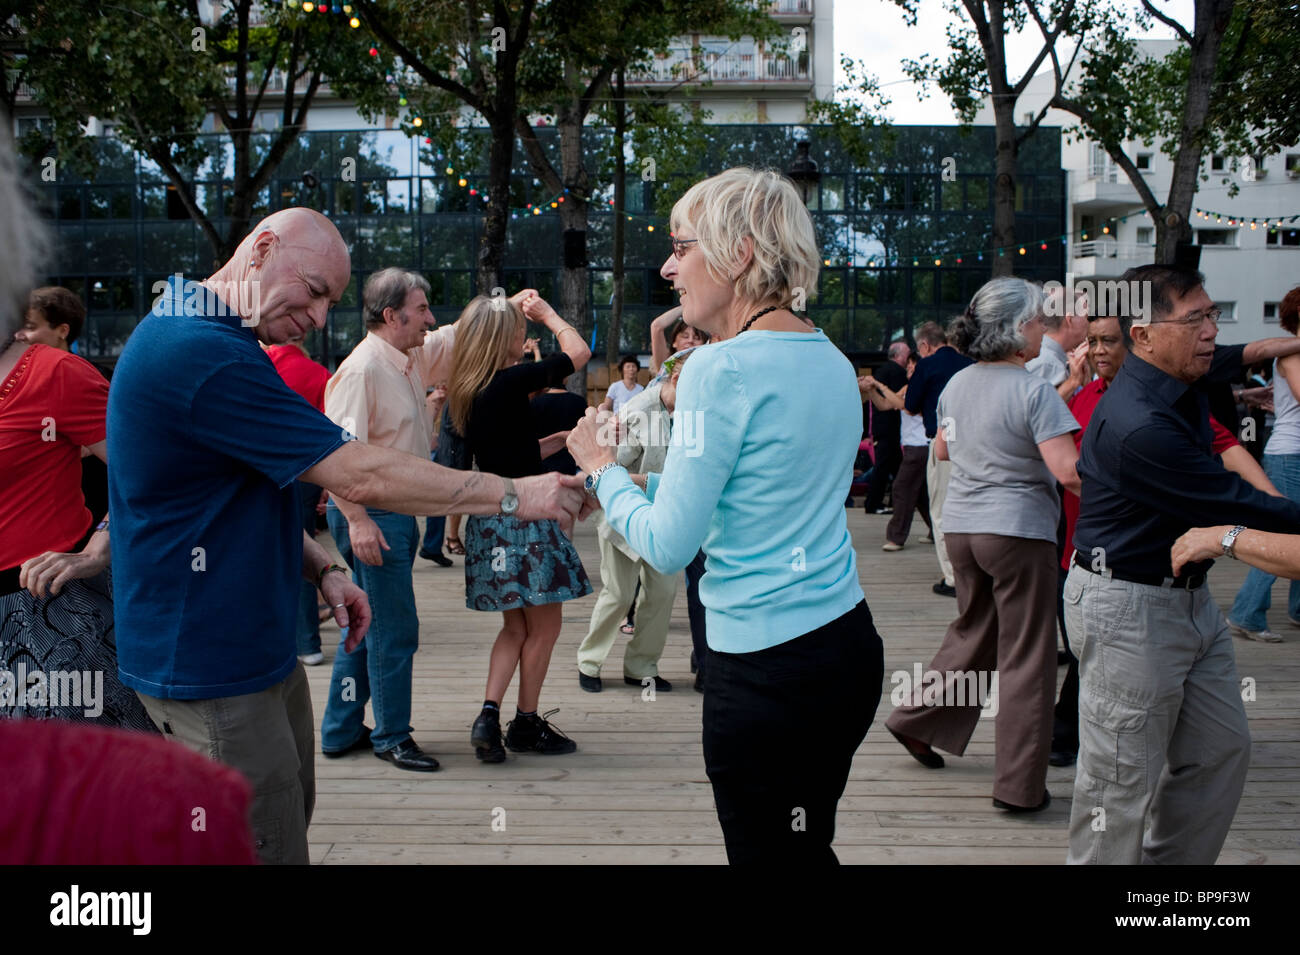 Paris, France, French People, Adult Couples, Rock n Roll Style Dancing at 'Paris Plages' on Seine River - Stock Image